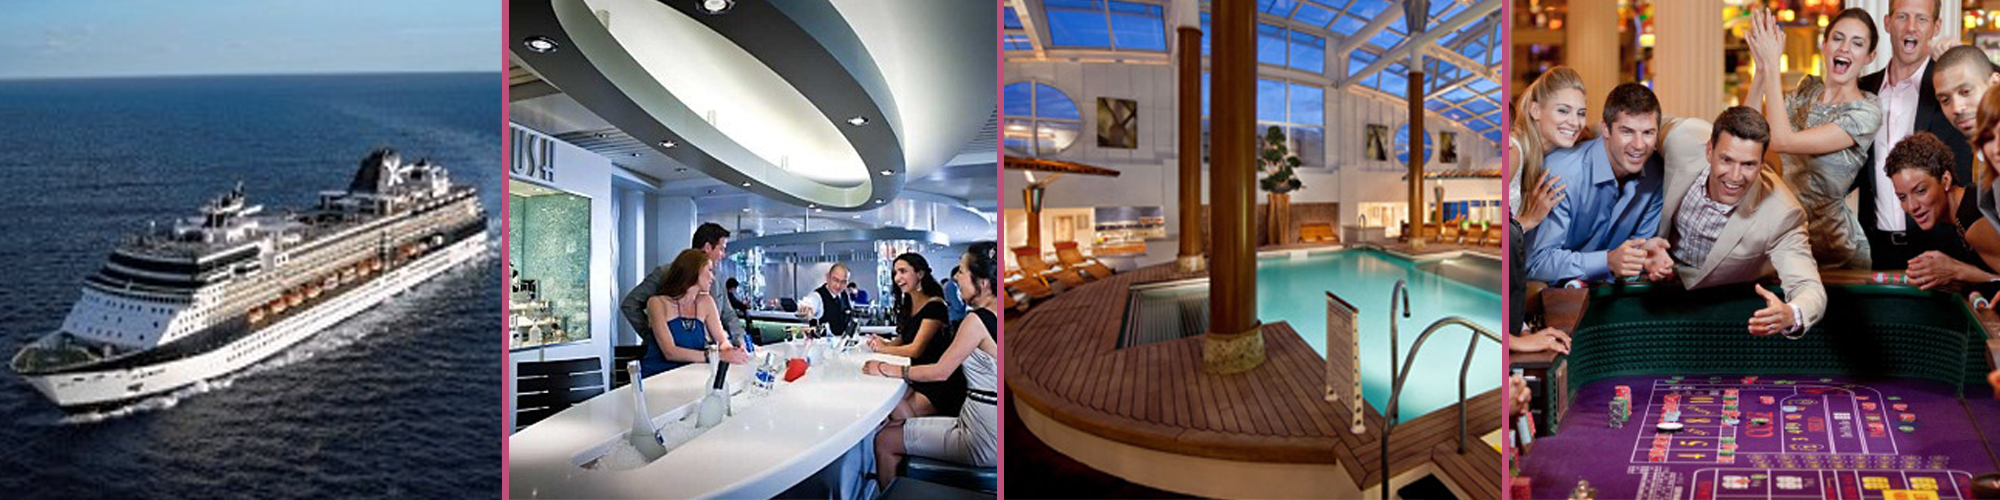 Image Collage of Cruise Ship, A Bar, A Pool, and Group Gambling